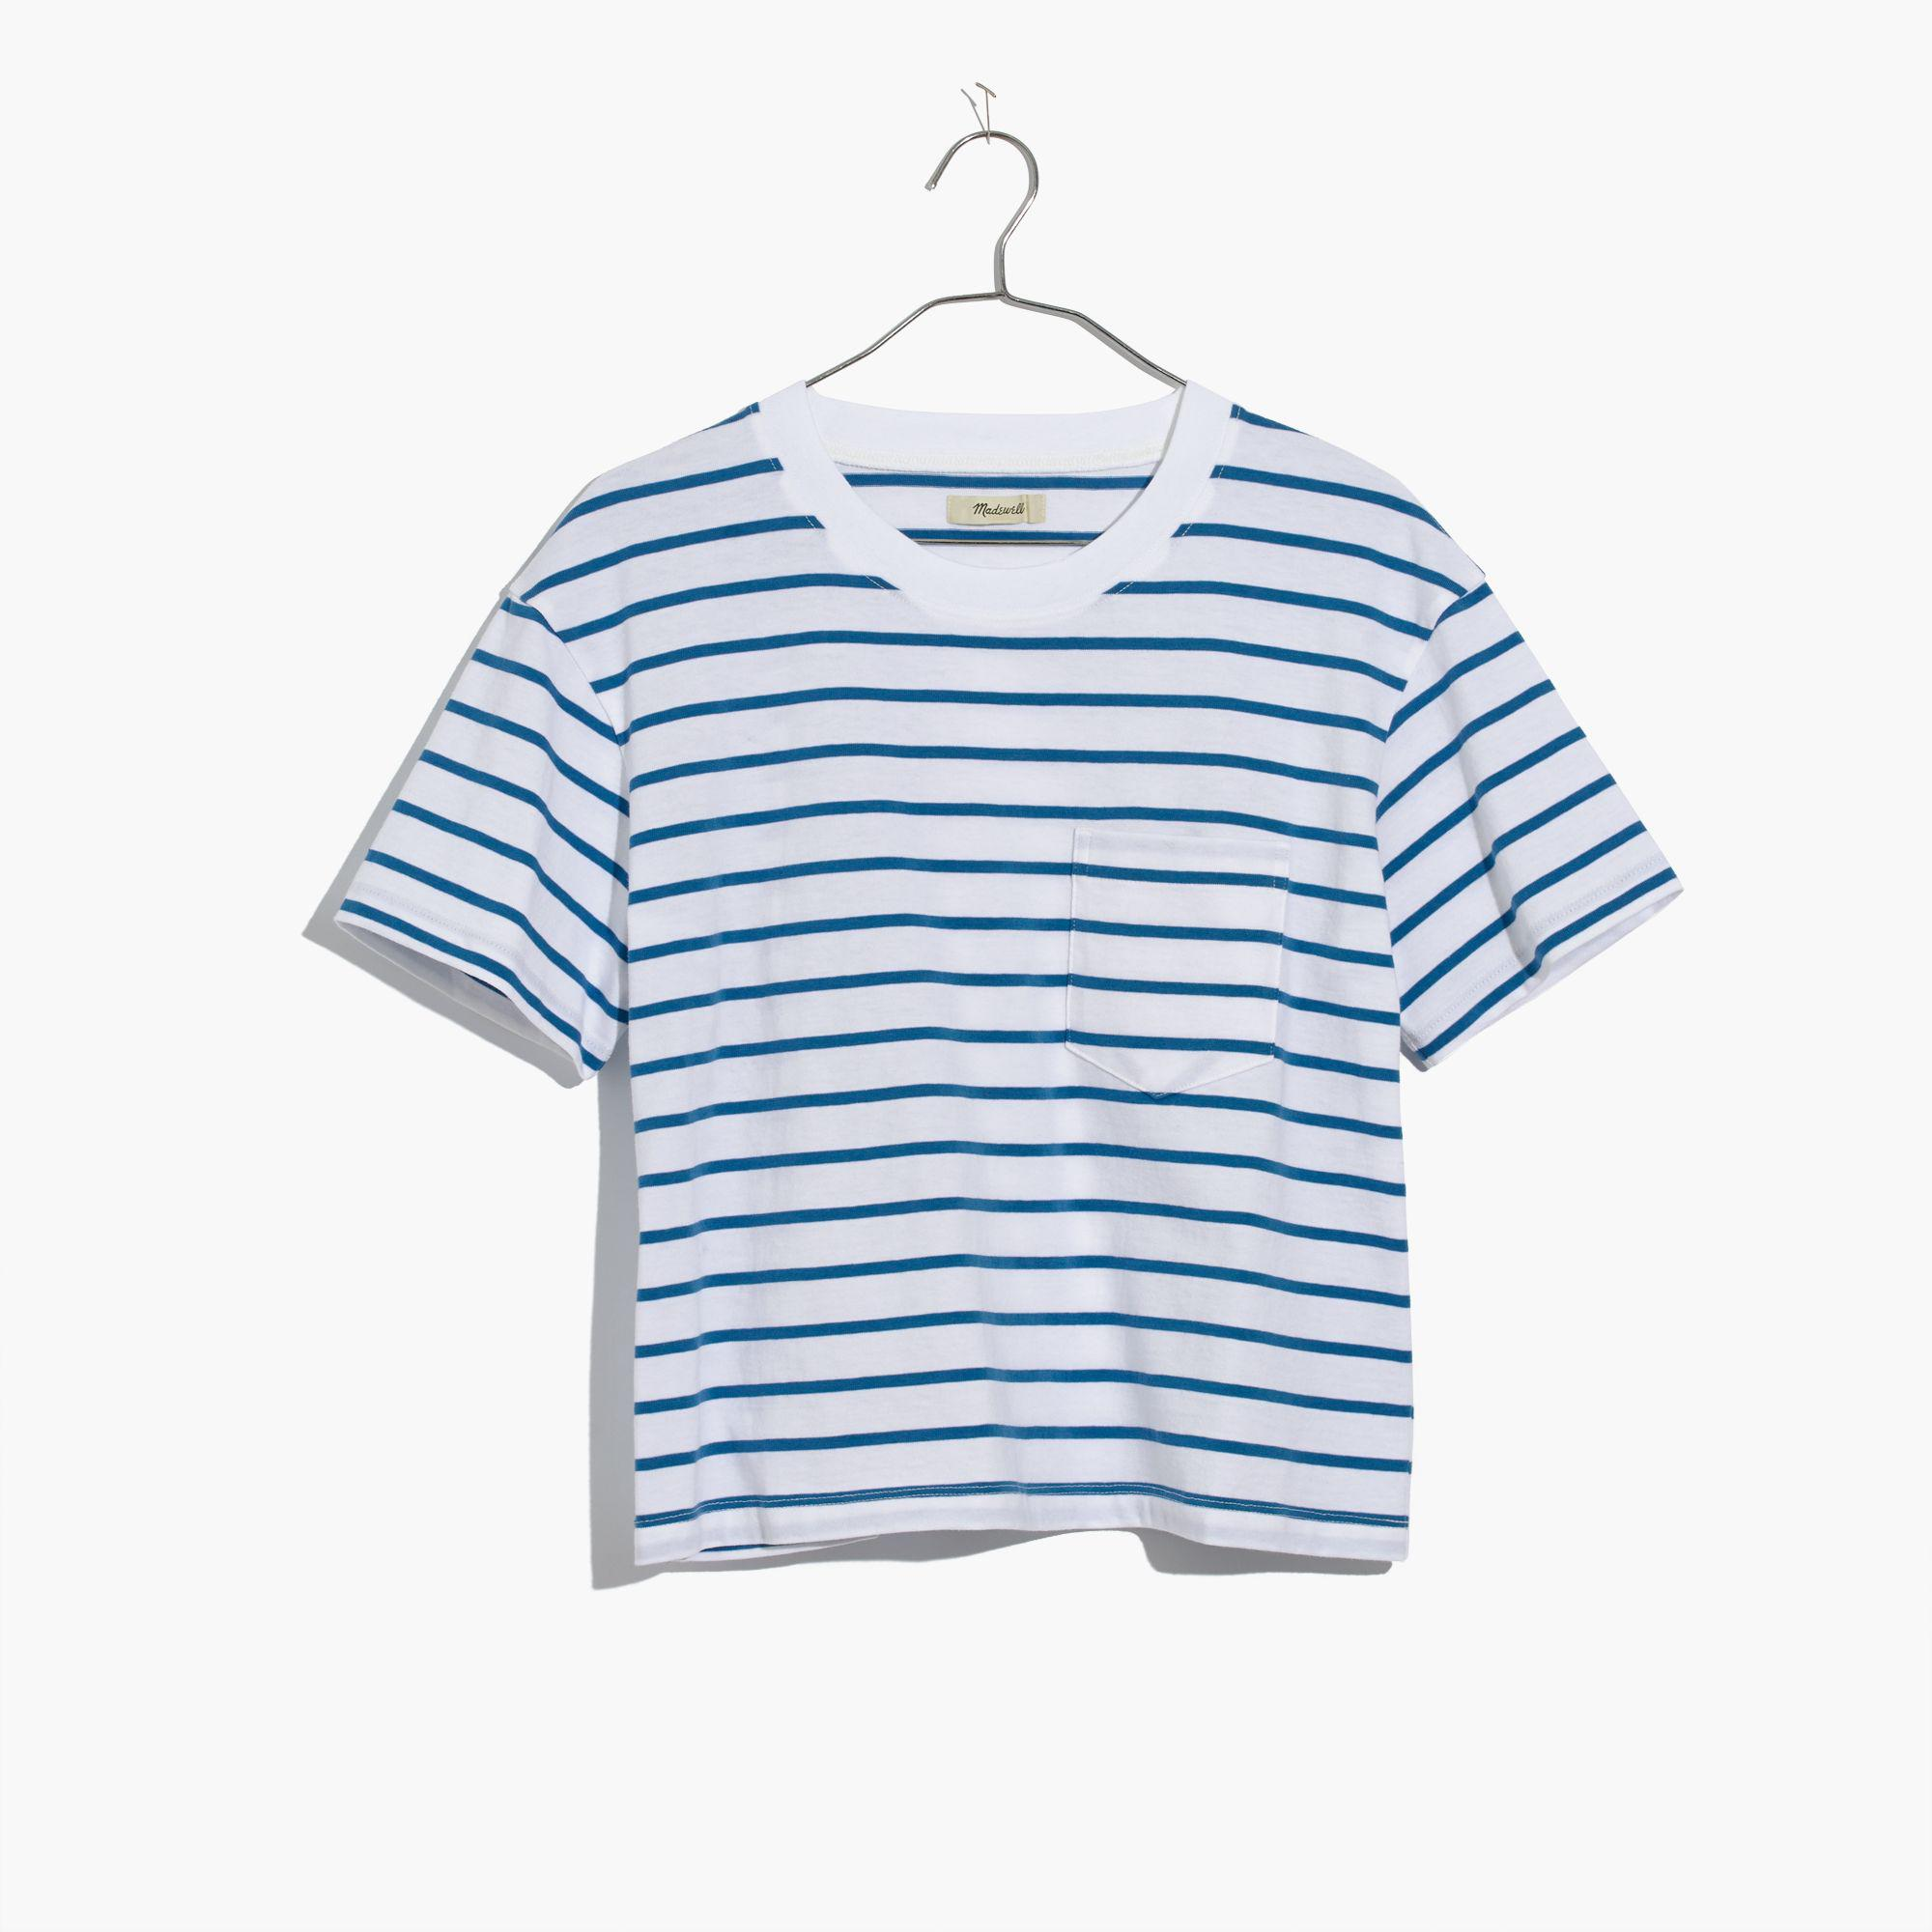 5ef5af130addbf Lyst - Madewell Easy Crop Tee In Wanda Stripe in Blue